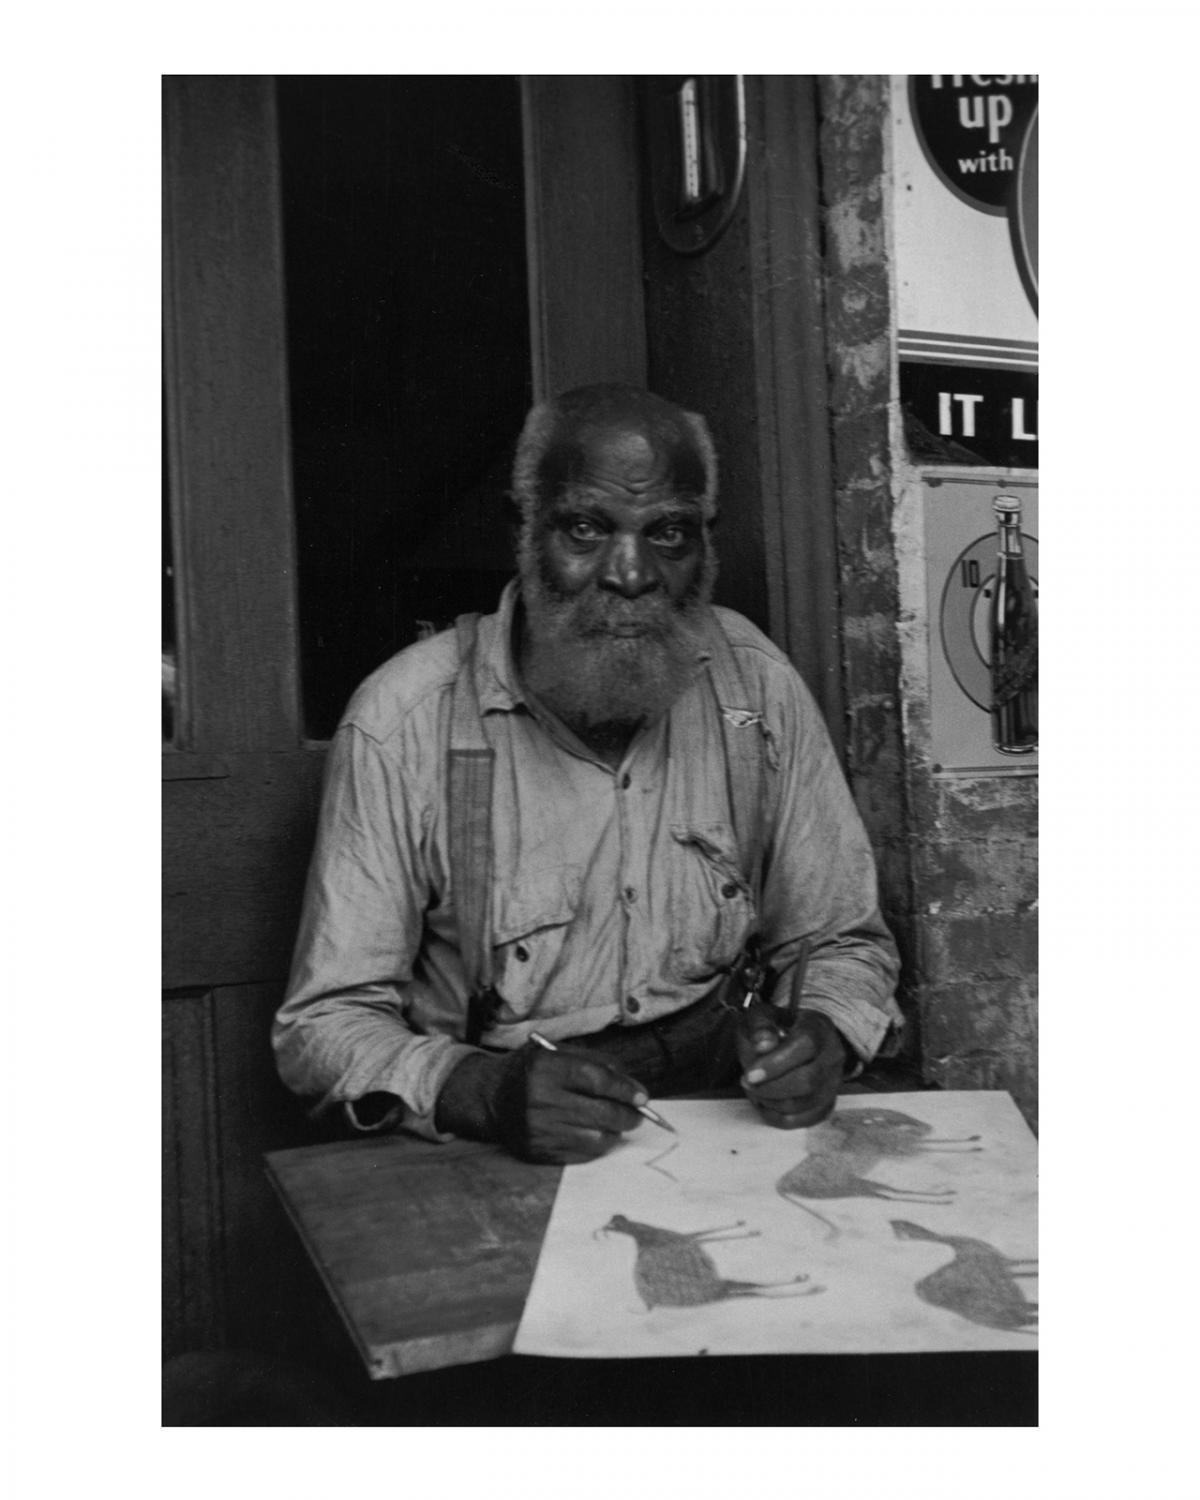 This is an image of artist Bill Traylor sitting at a table.